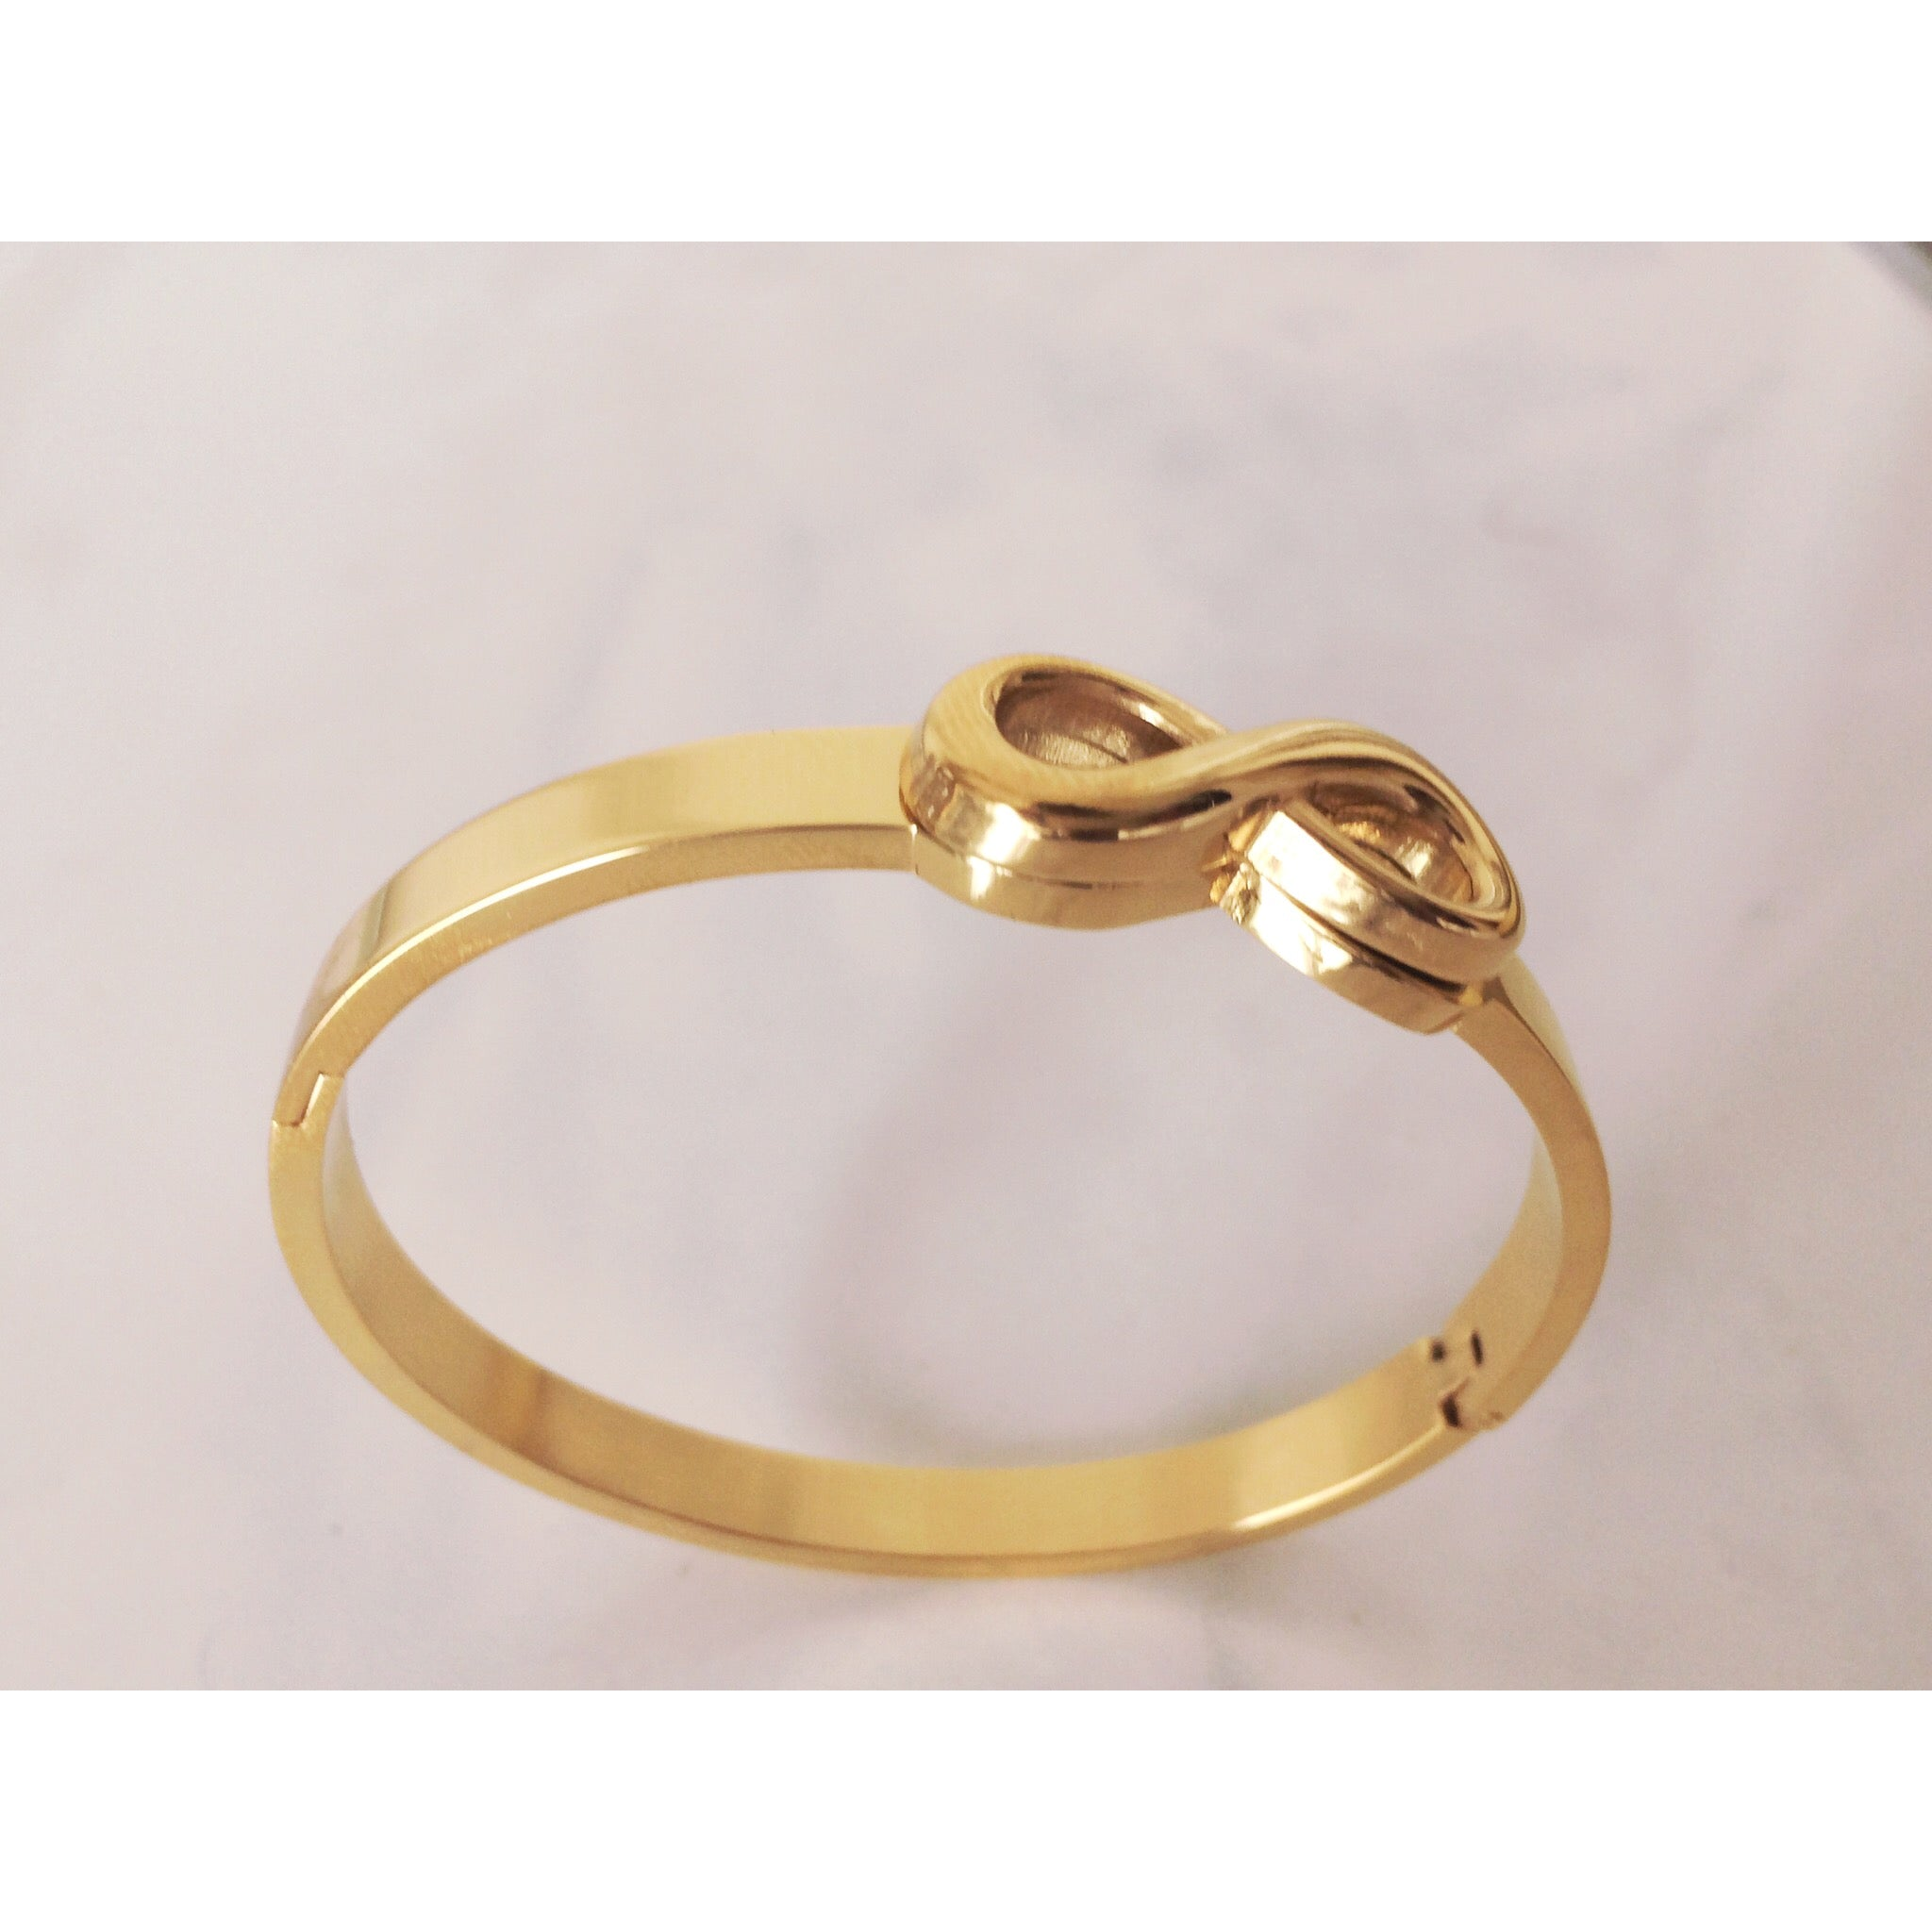 ALEX INFINITY BANGLE TARNISH FREE - ebrook lael